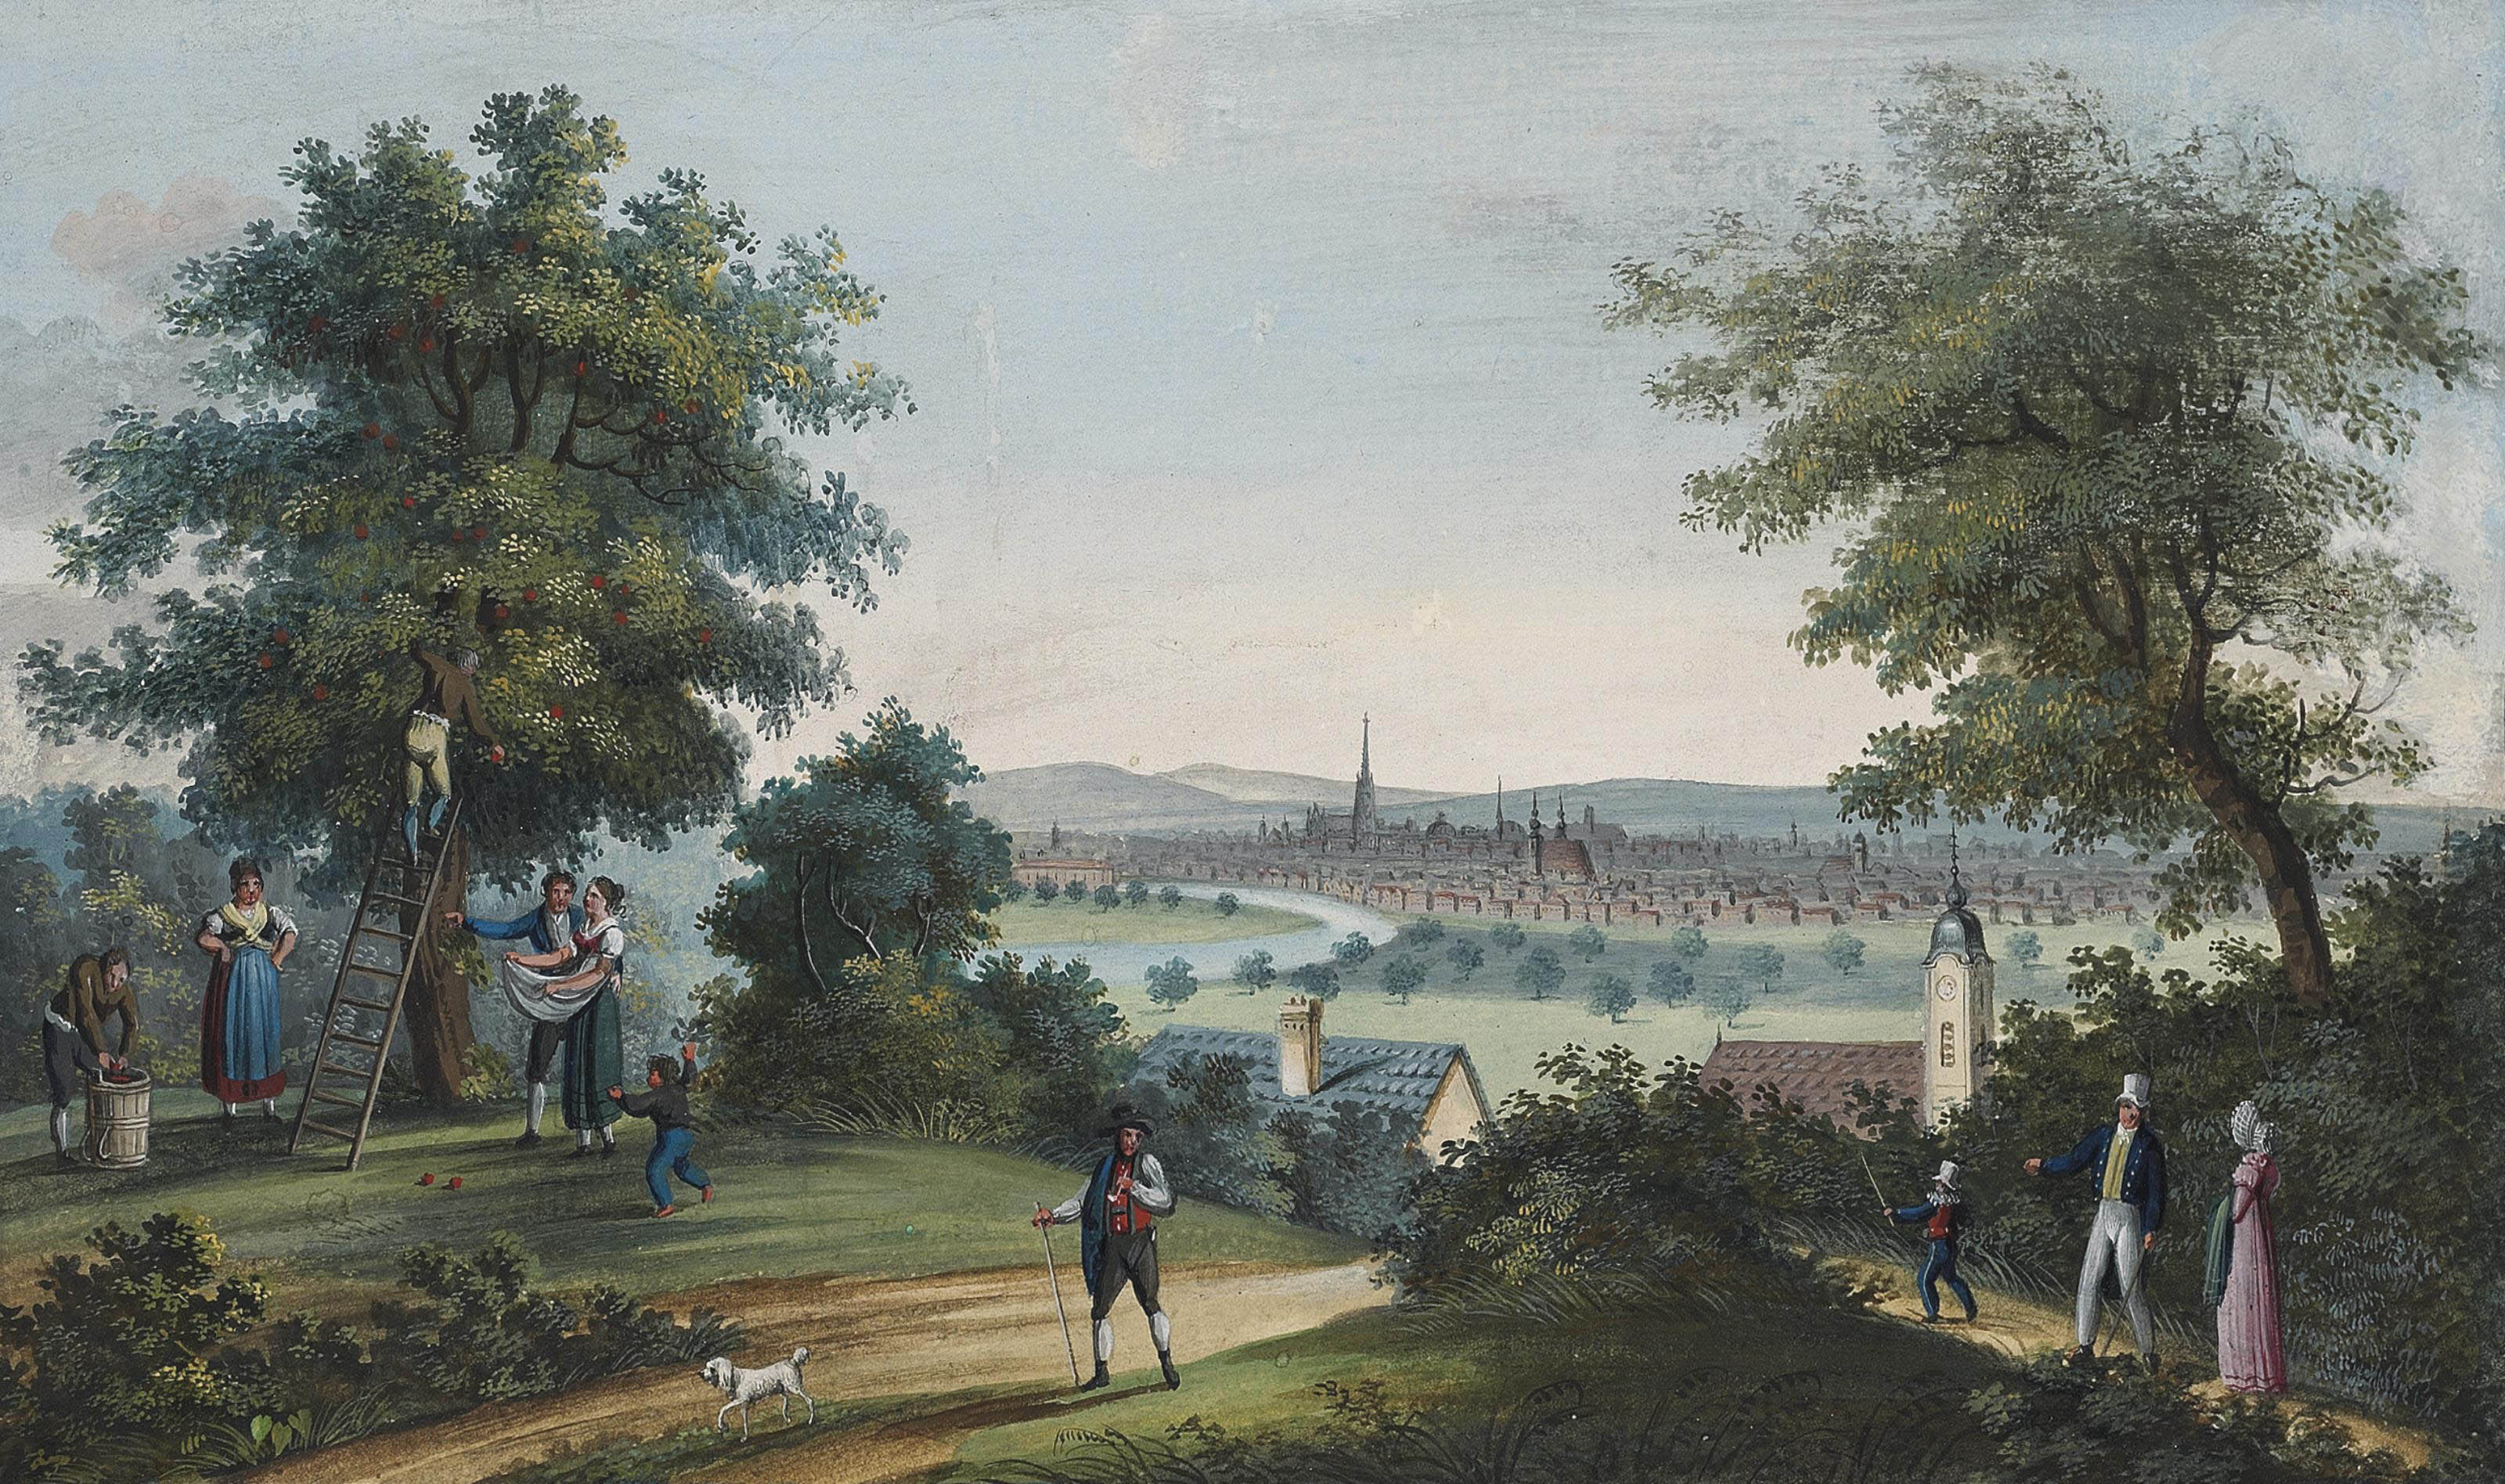 Vienna and the Heiligenstadt